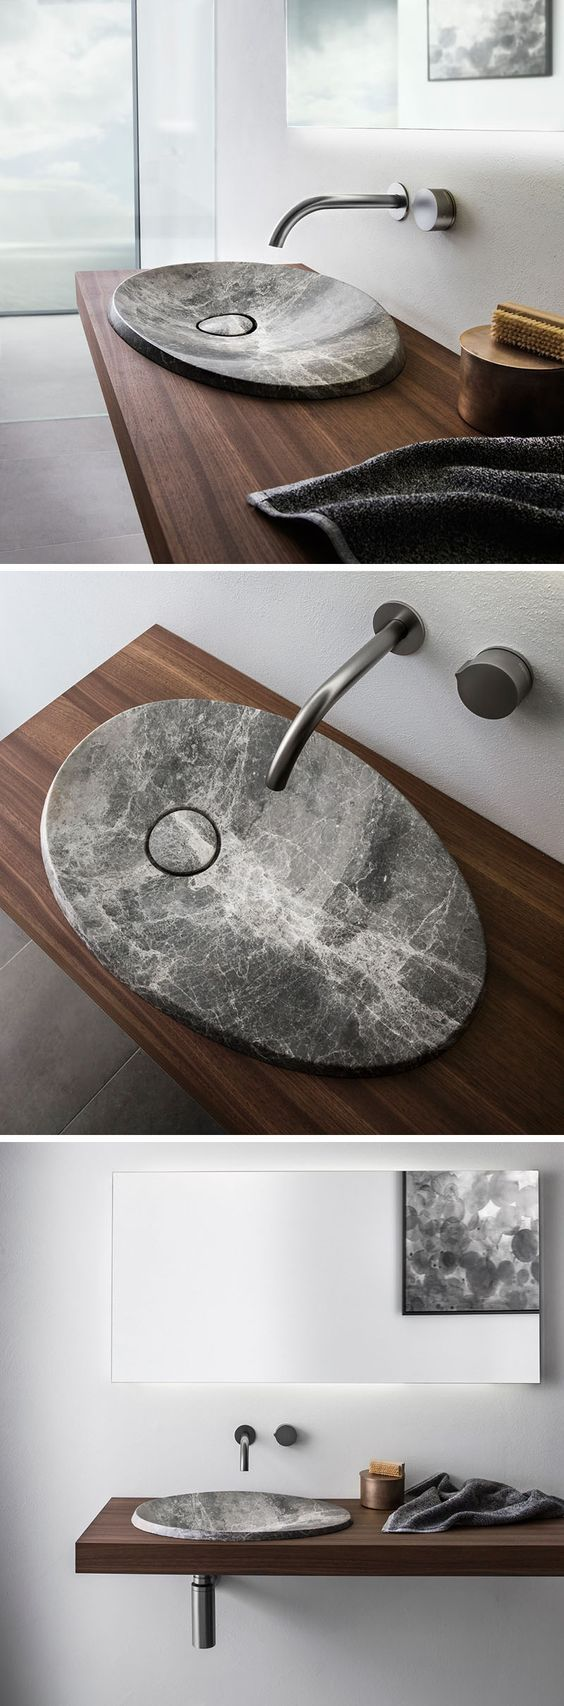 Tags rustic bathroom natural minimal monochrome - The Design Of This Natural Stone Sink Is Inspired By The Shape Of Craters Left From A Volcano